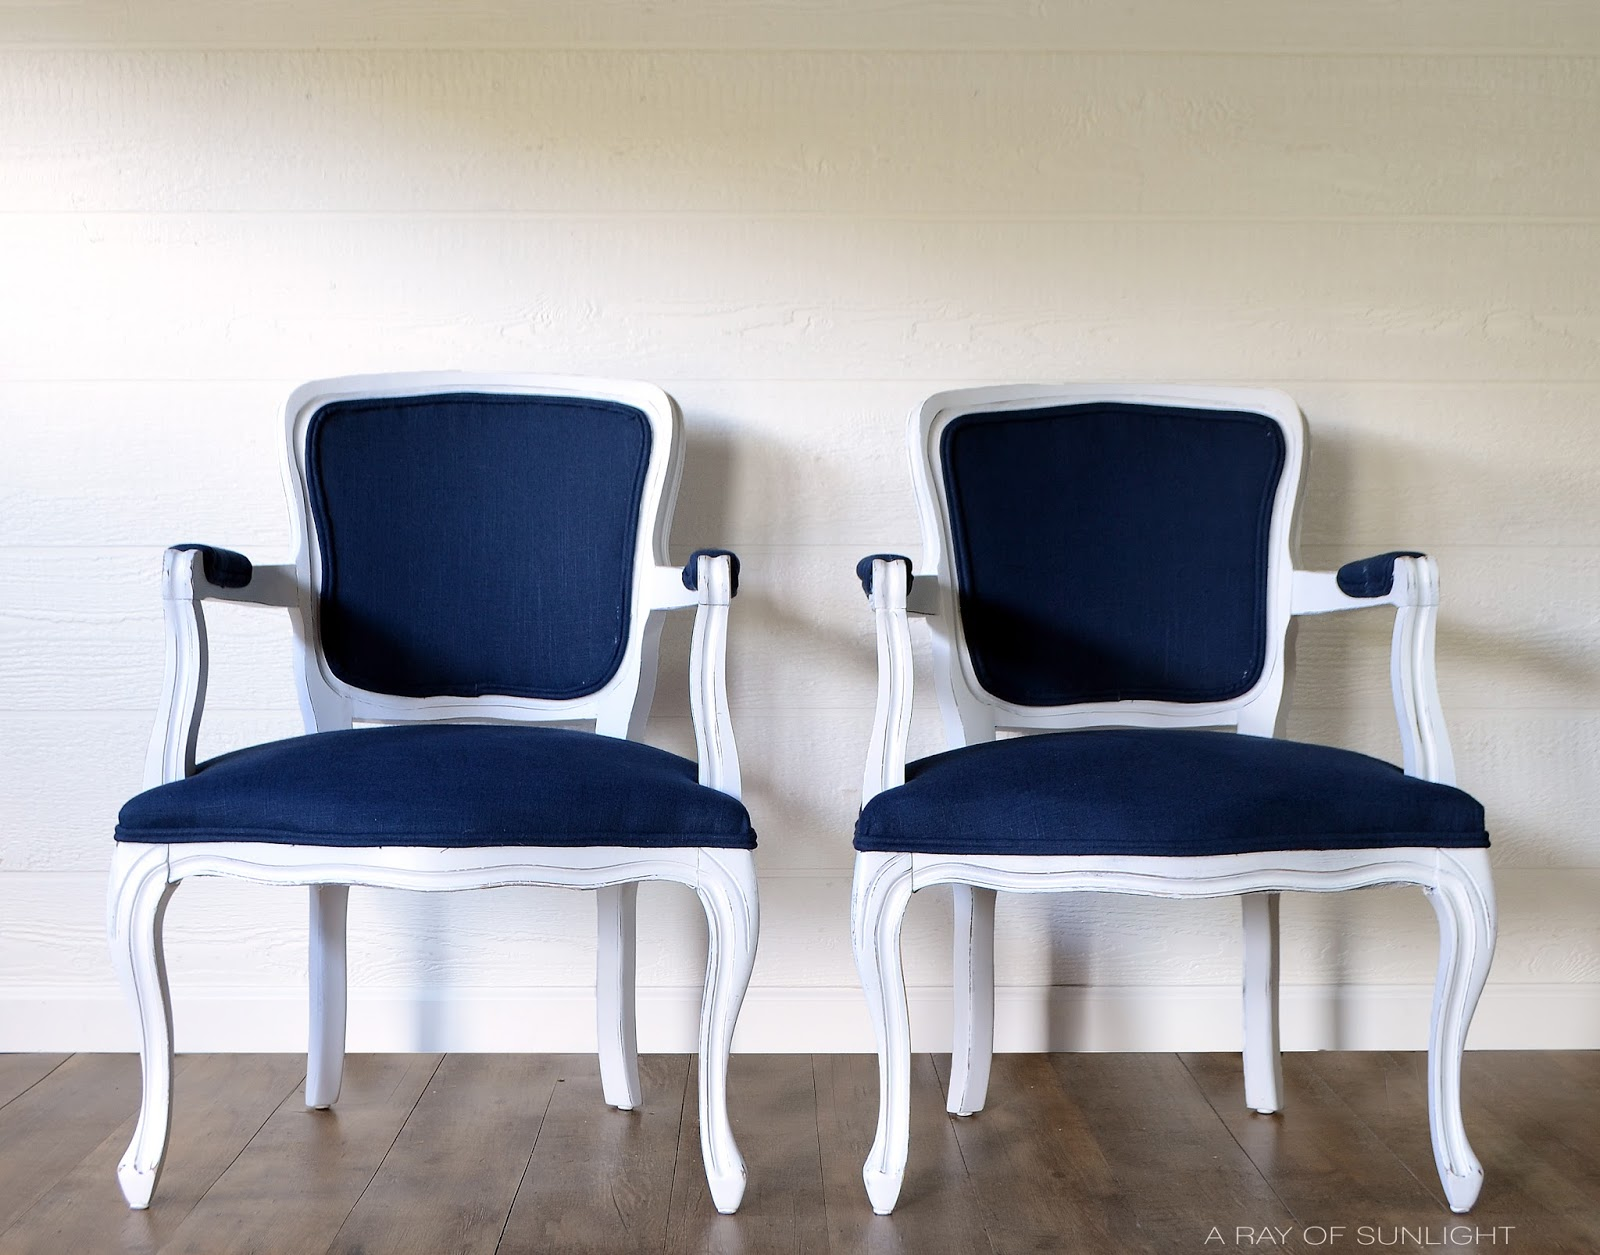 How to easily update old worn out thrift store chairs with some paint and fabric by A Ray of Sunlight Furniture. Love the navy blue and white makeover!